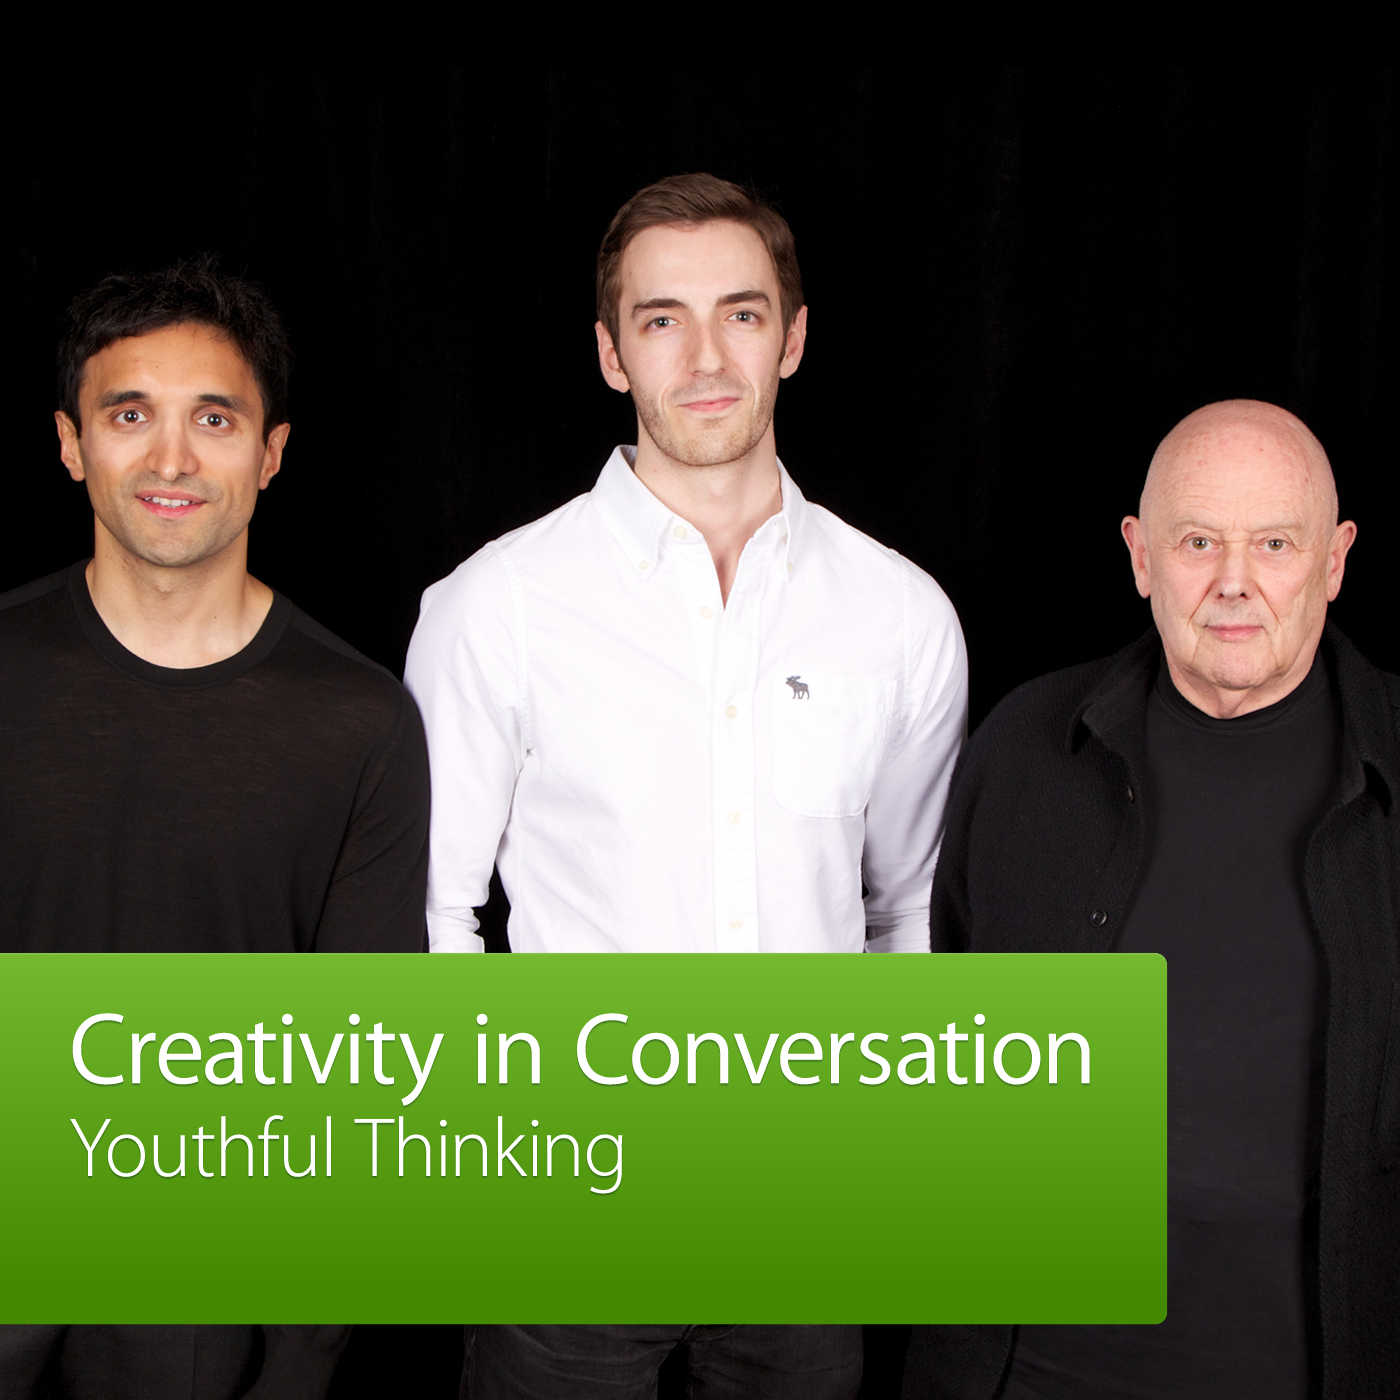 Creativity in Conversation: Youthful Thinking